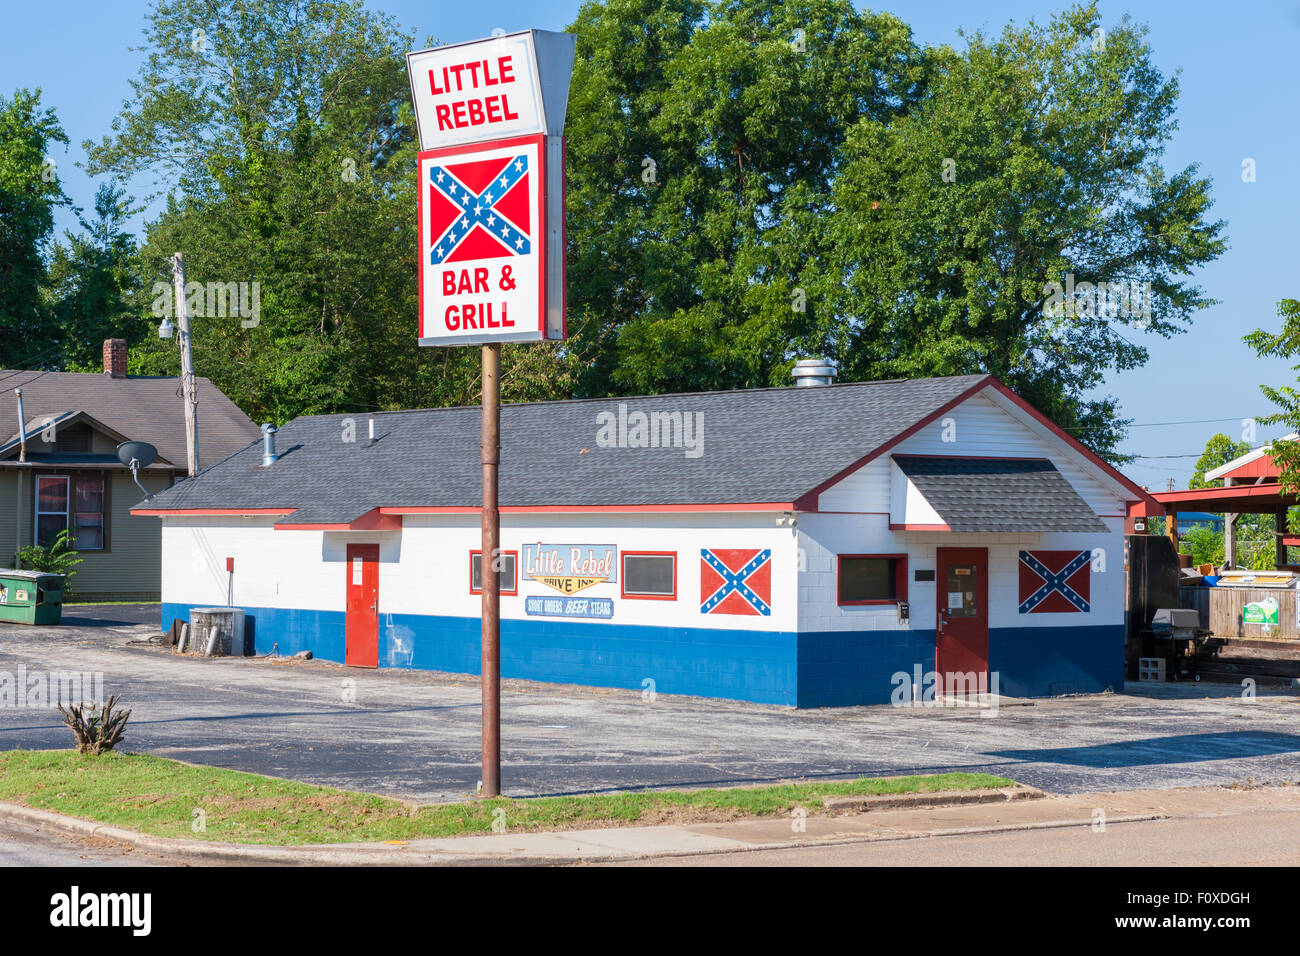 Der kleine Rebell Bar & Grill in Jackson, Tennessee. Stockbild